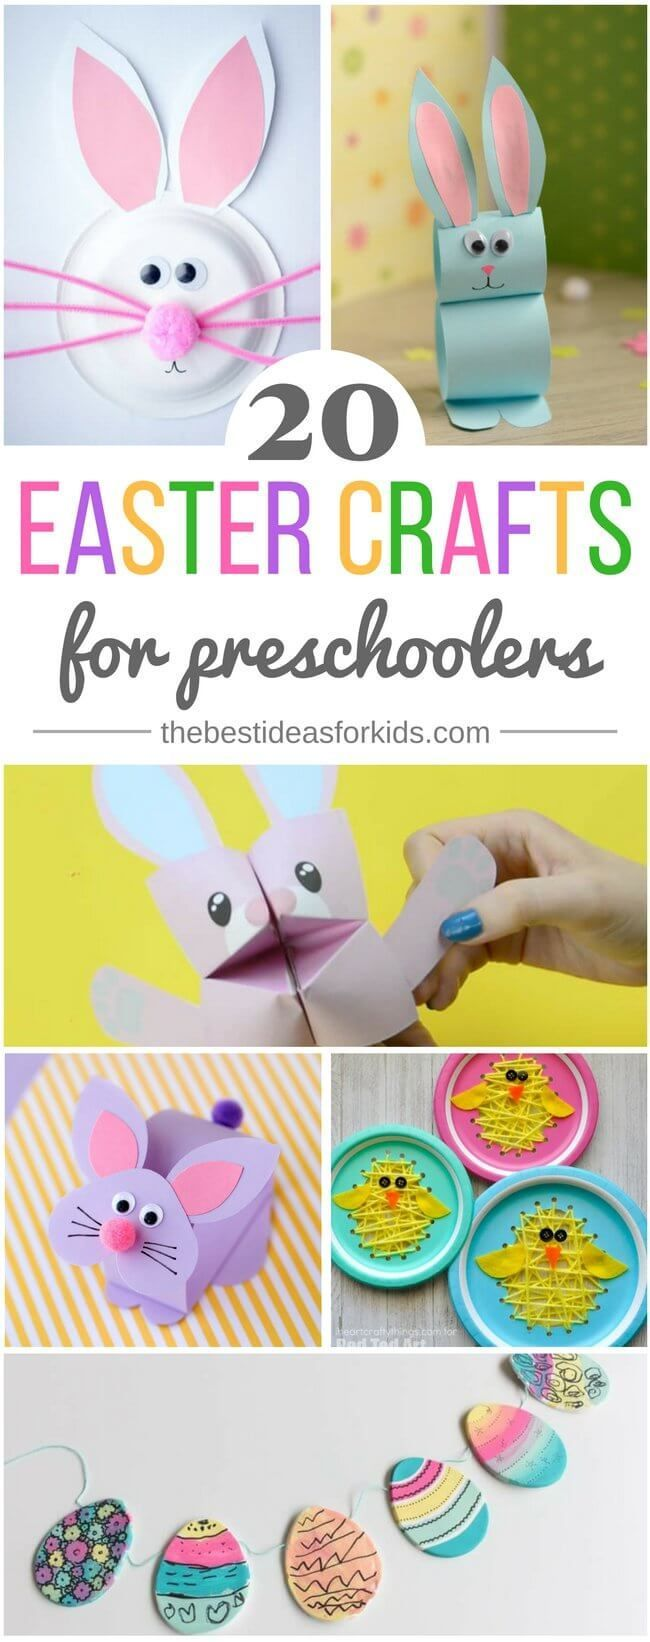 20 fun and simple Easter crafts for kids and preschoolers! So many cute bunny craft ideas! Easter crafts | Easter crafts for kids | Easter crafts for preschoolers | bunny crafts | bunny paper plates | easter string art | bunny paper craft | bunny cootie c